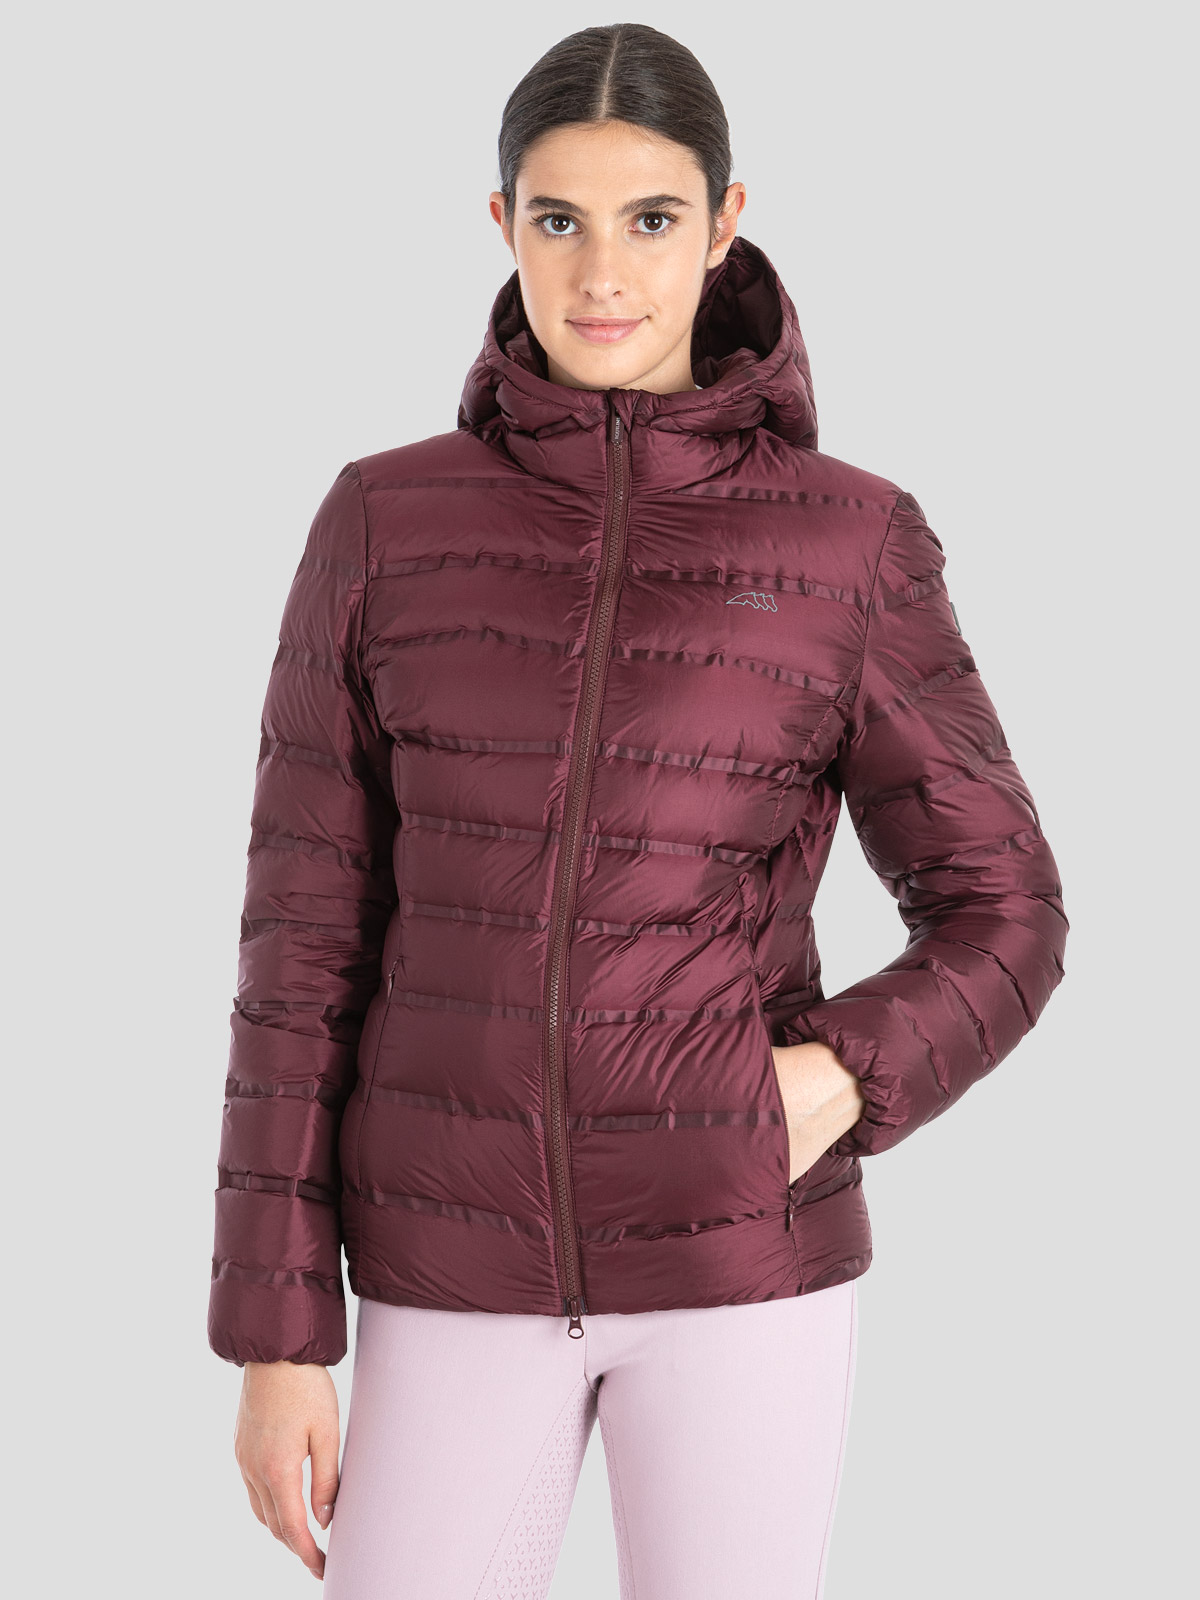 ADIZ WOMEN'S ECO DOWN JACKET 1